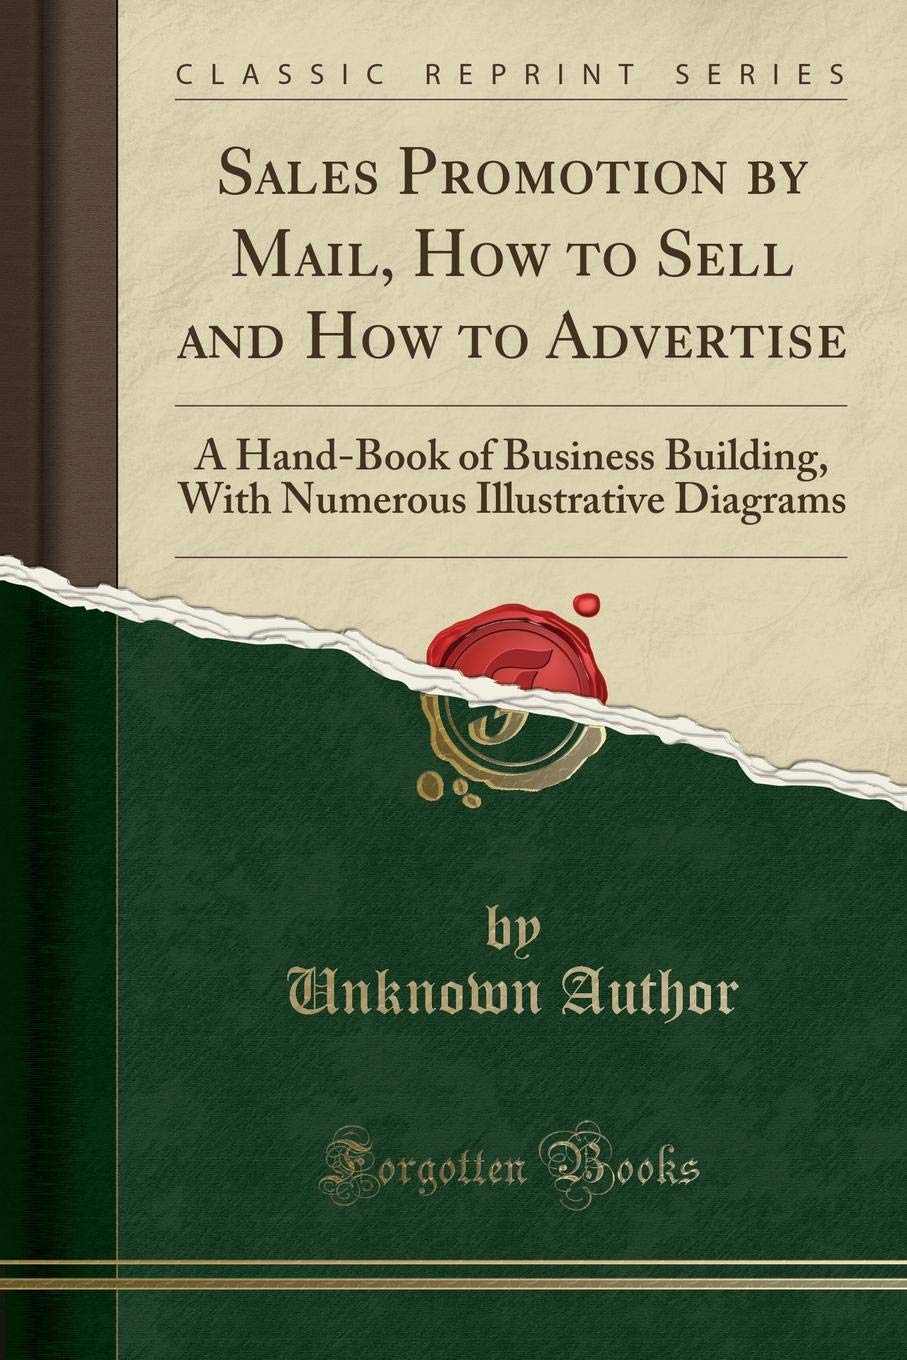 Download Sales Promotion by Mail, How to Sell and How to Advertise: A Hand-Book of Business Building, With Numerous Illustrative Diagrams (Classic Reprint) ebook